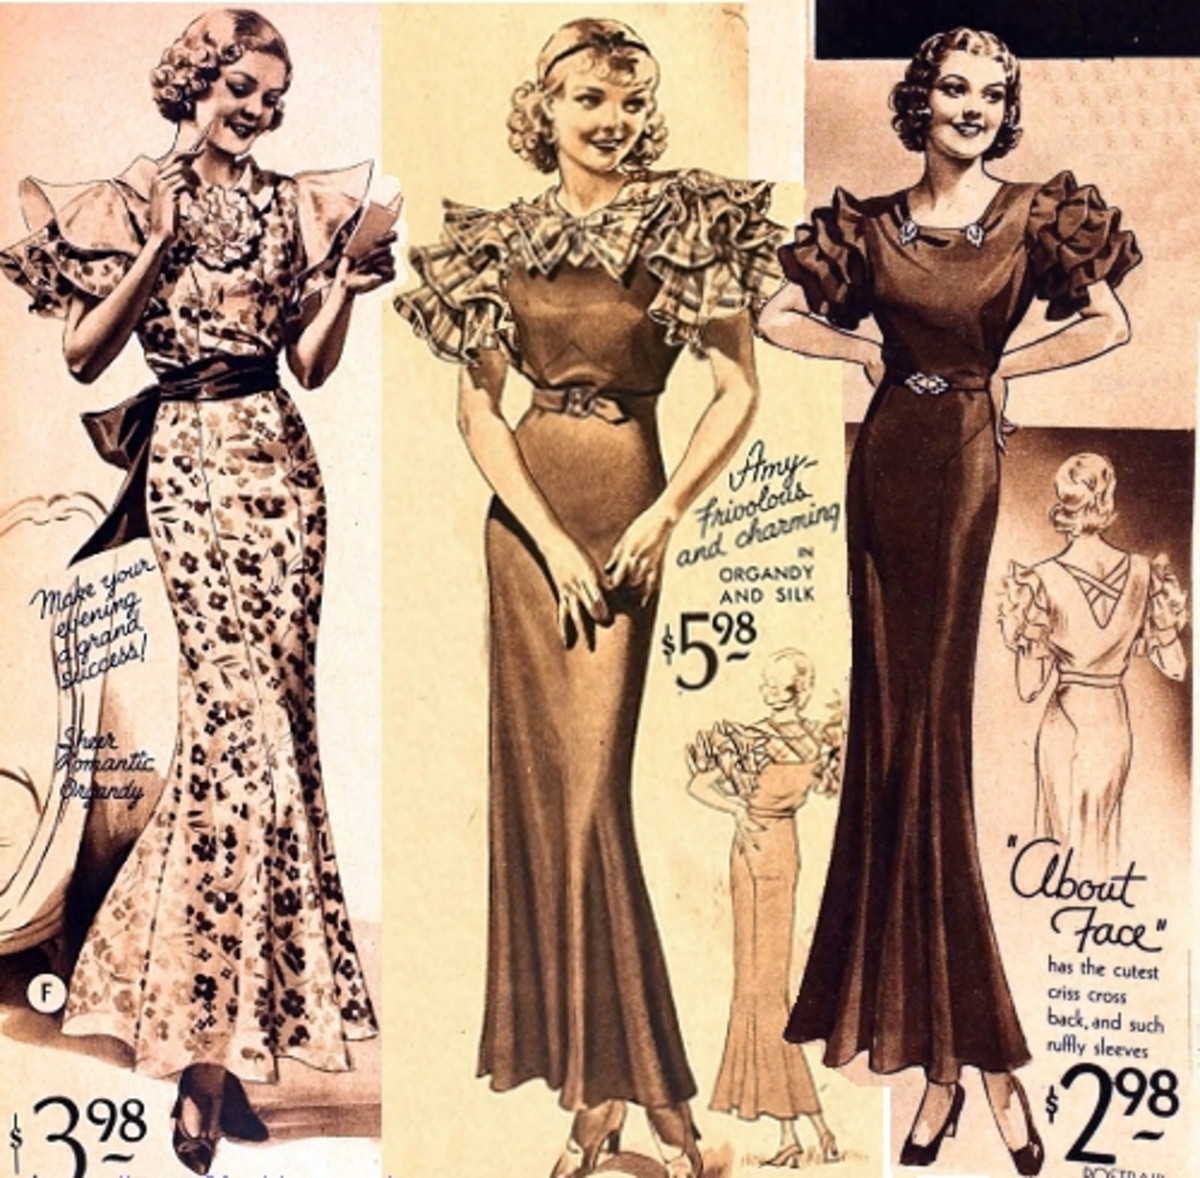 Three Letty Lynton-style dresses featured in a Sears catalog from 1933.